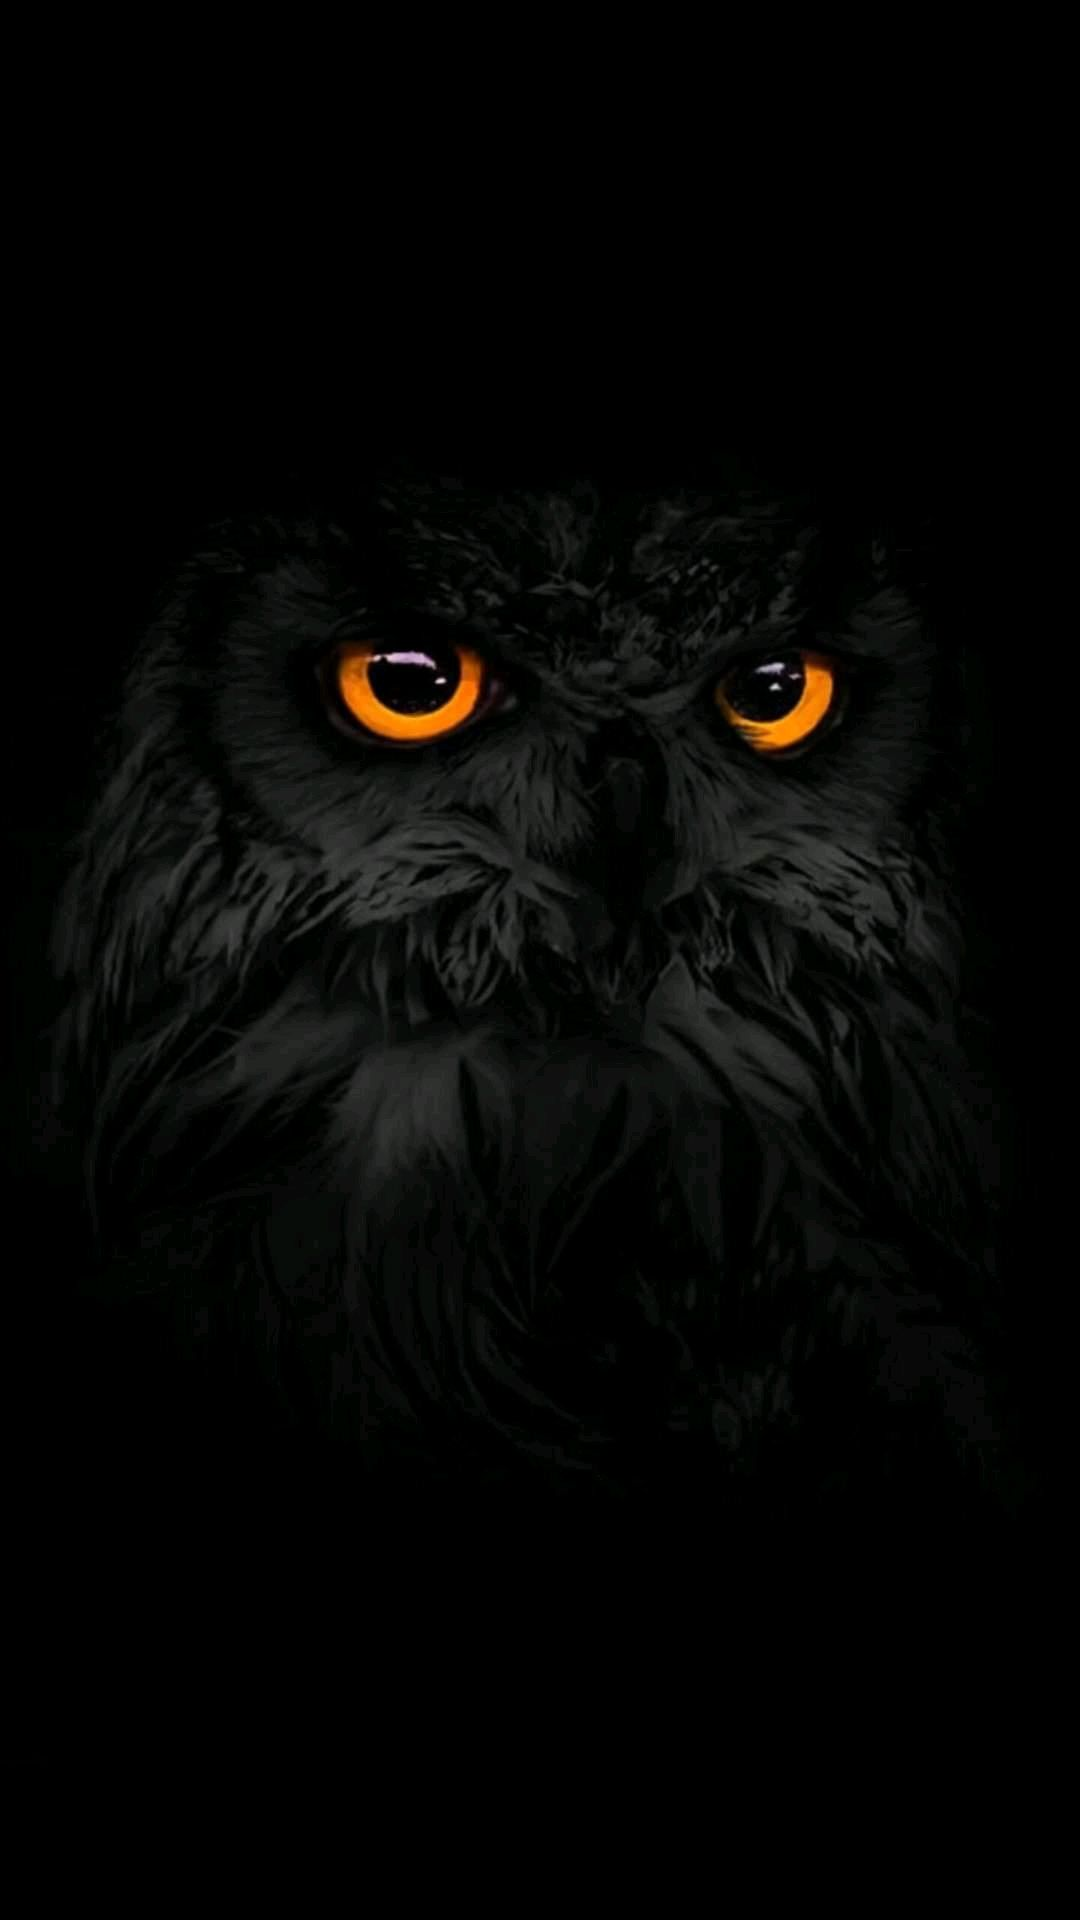 Colorful Owl Iphone Background In 2020 Owl Wallpaper Owl Wallpaper Iphone Owl Pictures